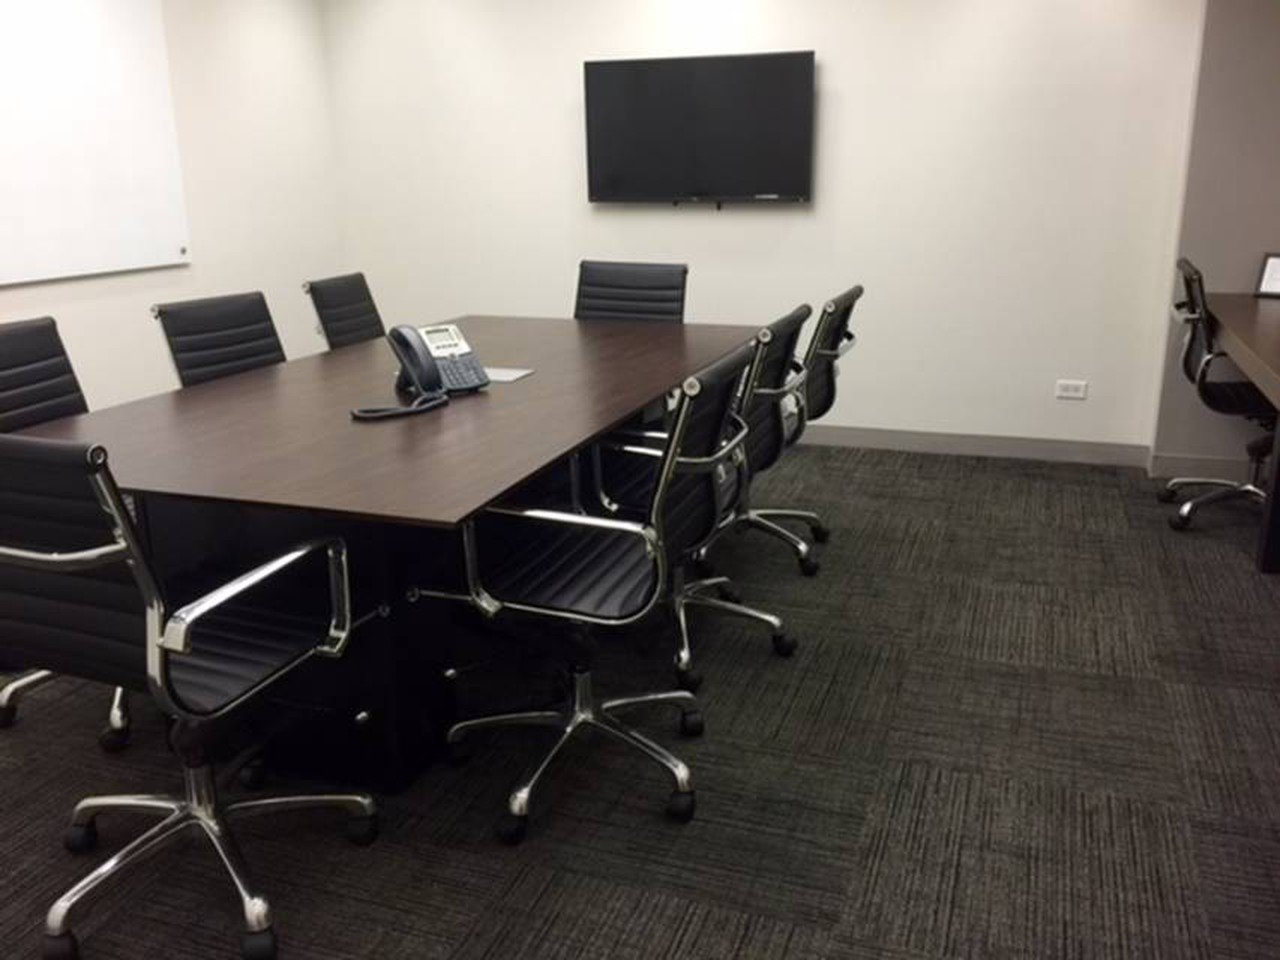 NYC conference rooms Meetingraum Corporate Suites 8 Person Board Room 8C image 0